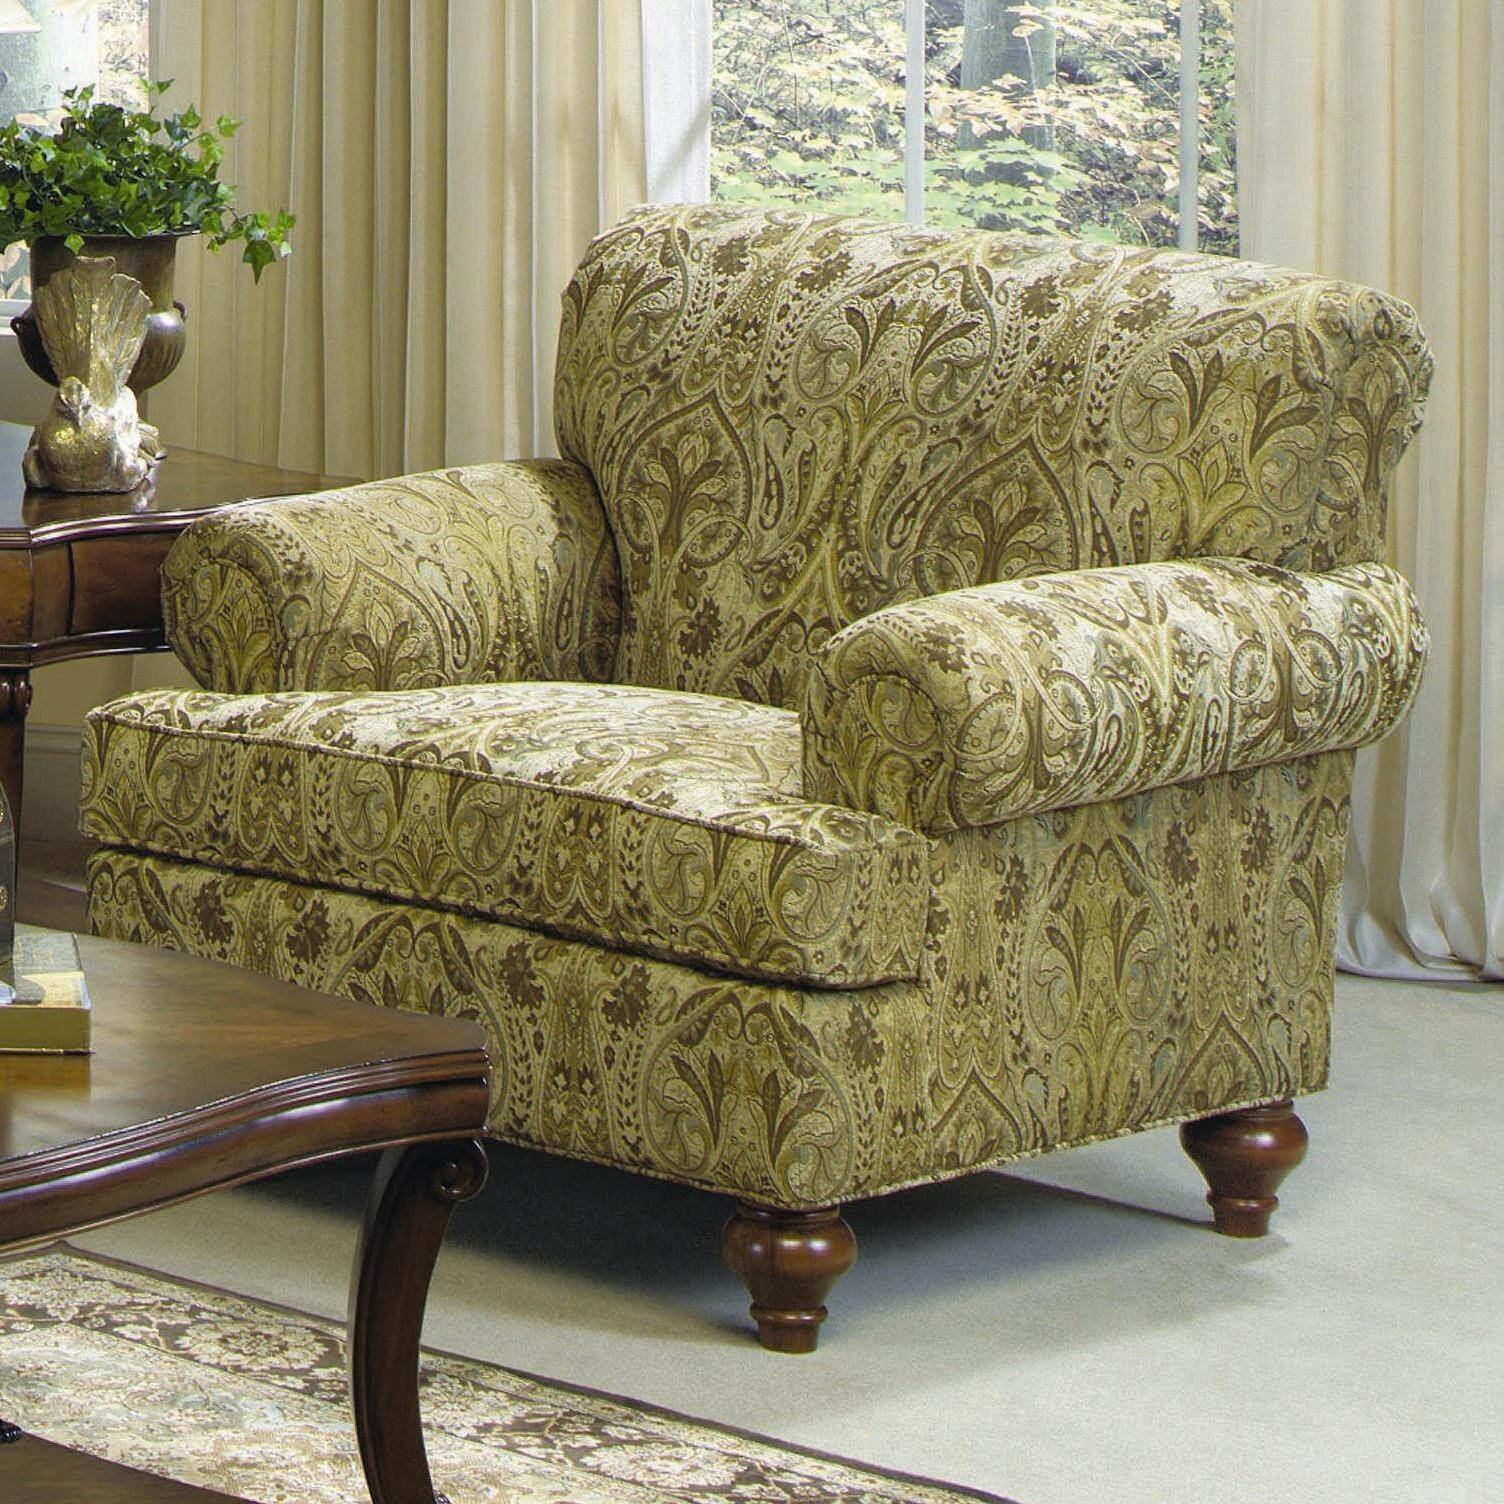 Traditional Living Room Upholstered Chairs Luxury Craftmaster 7047 Traditional Upholstered Chair with Turned Wood Legs Vandrie Home Furnishings